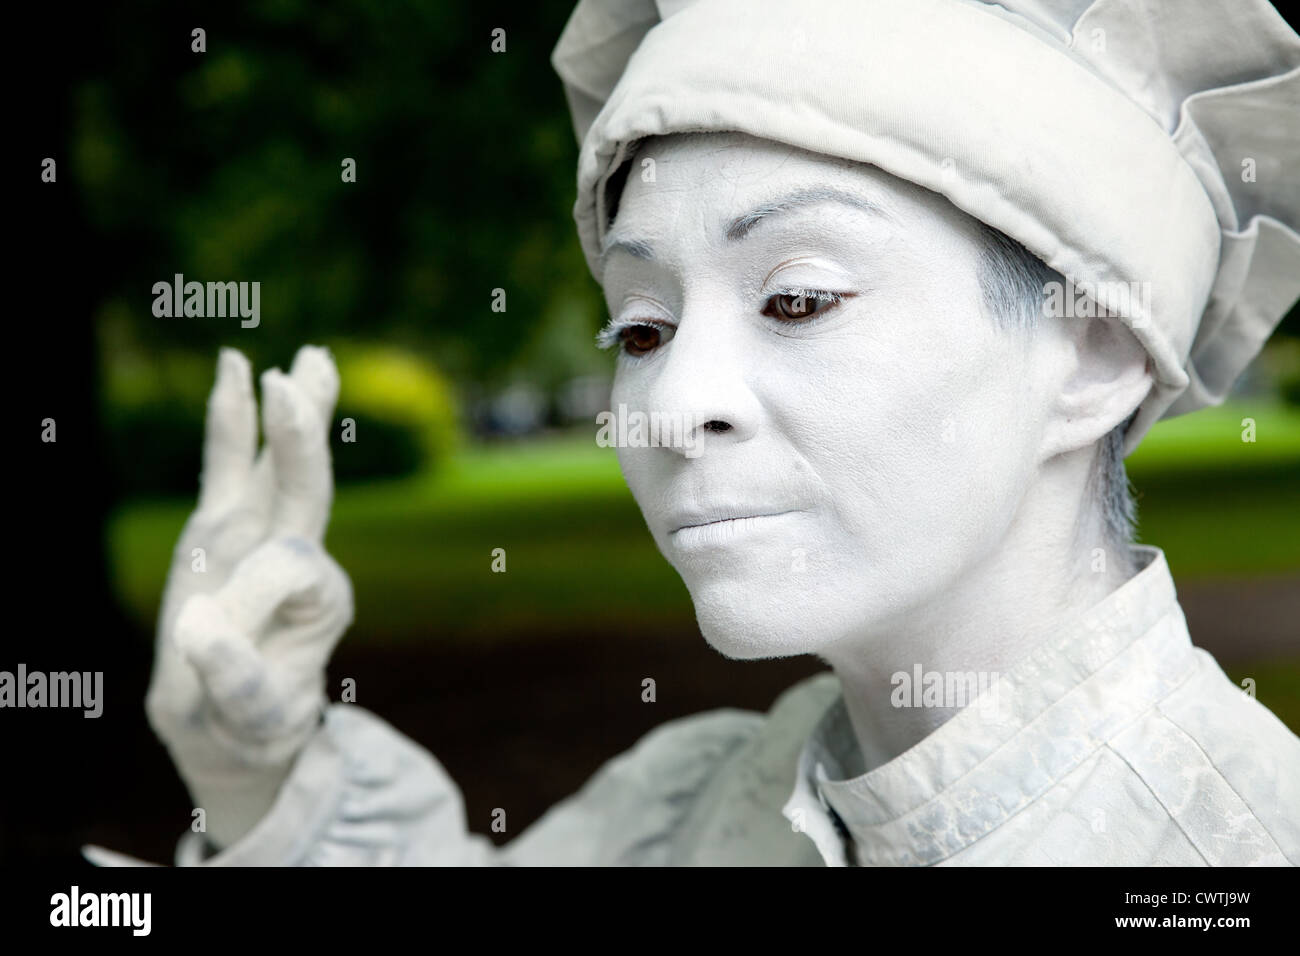 White street mime (baker character) performing. - Stock Image